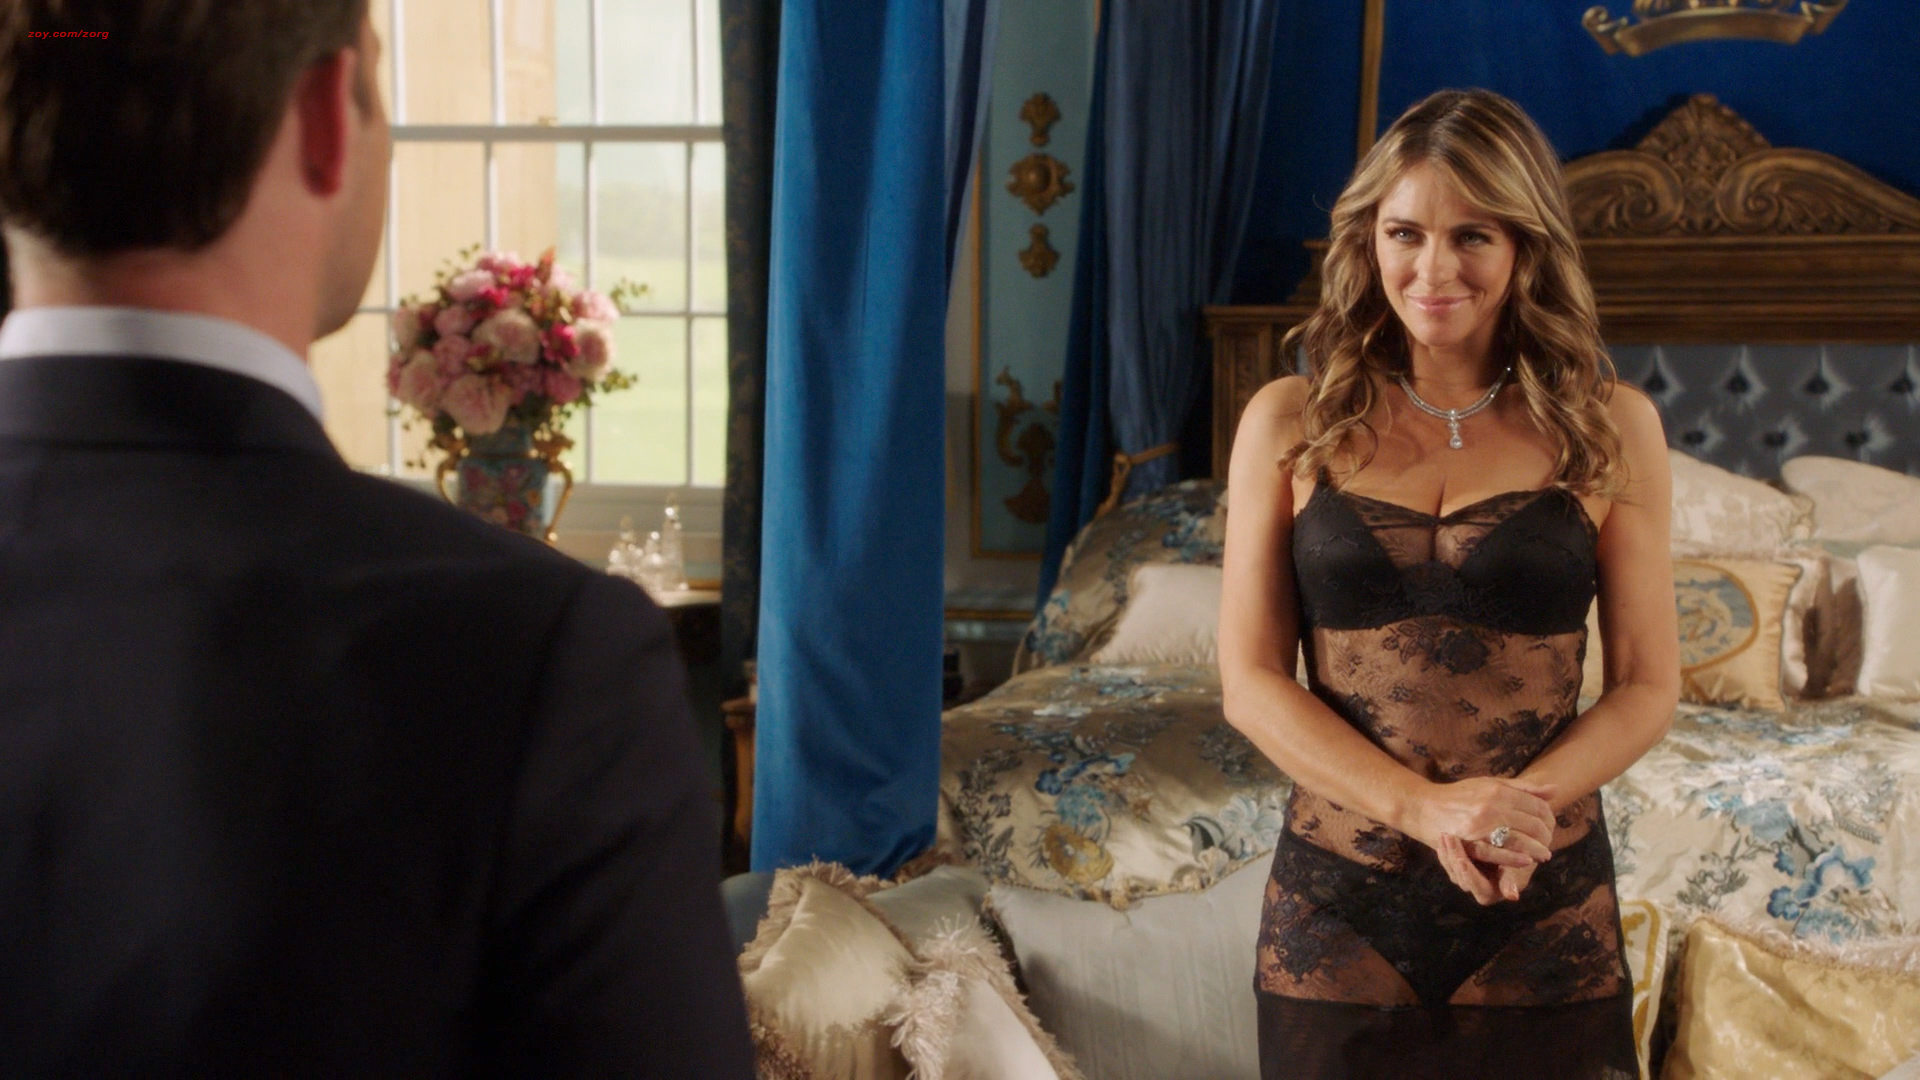 Elizabeth Hurley Hot And Sexy In Lingerie The Royals 2016